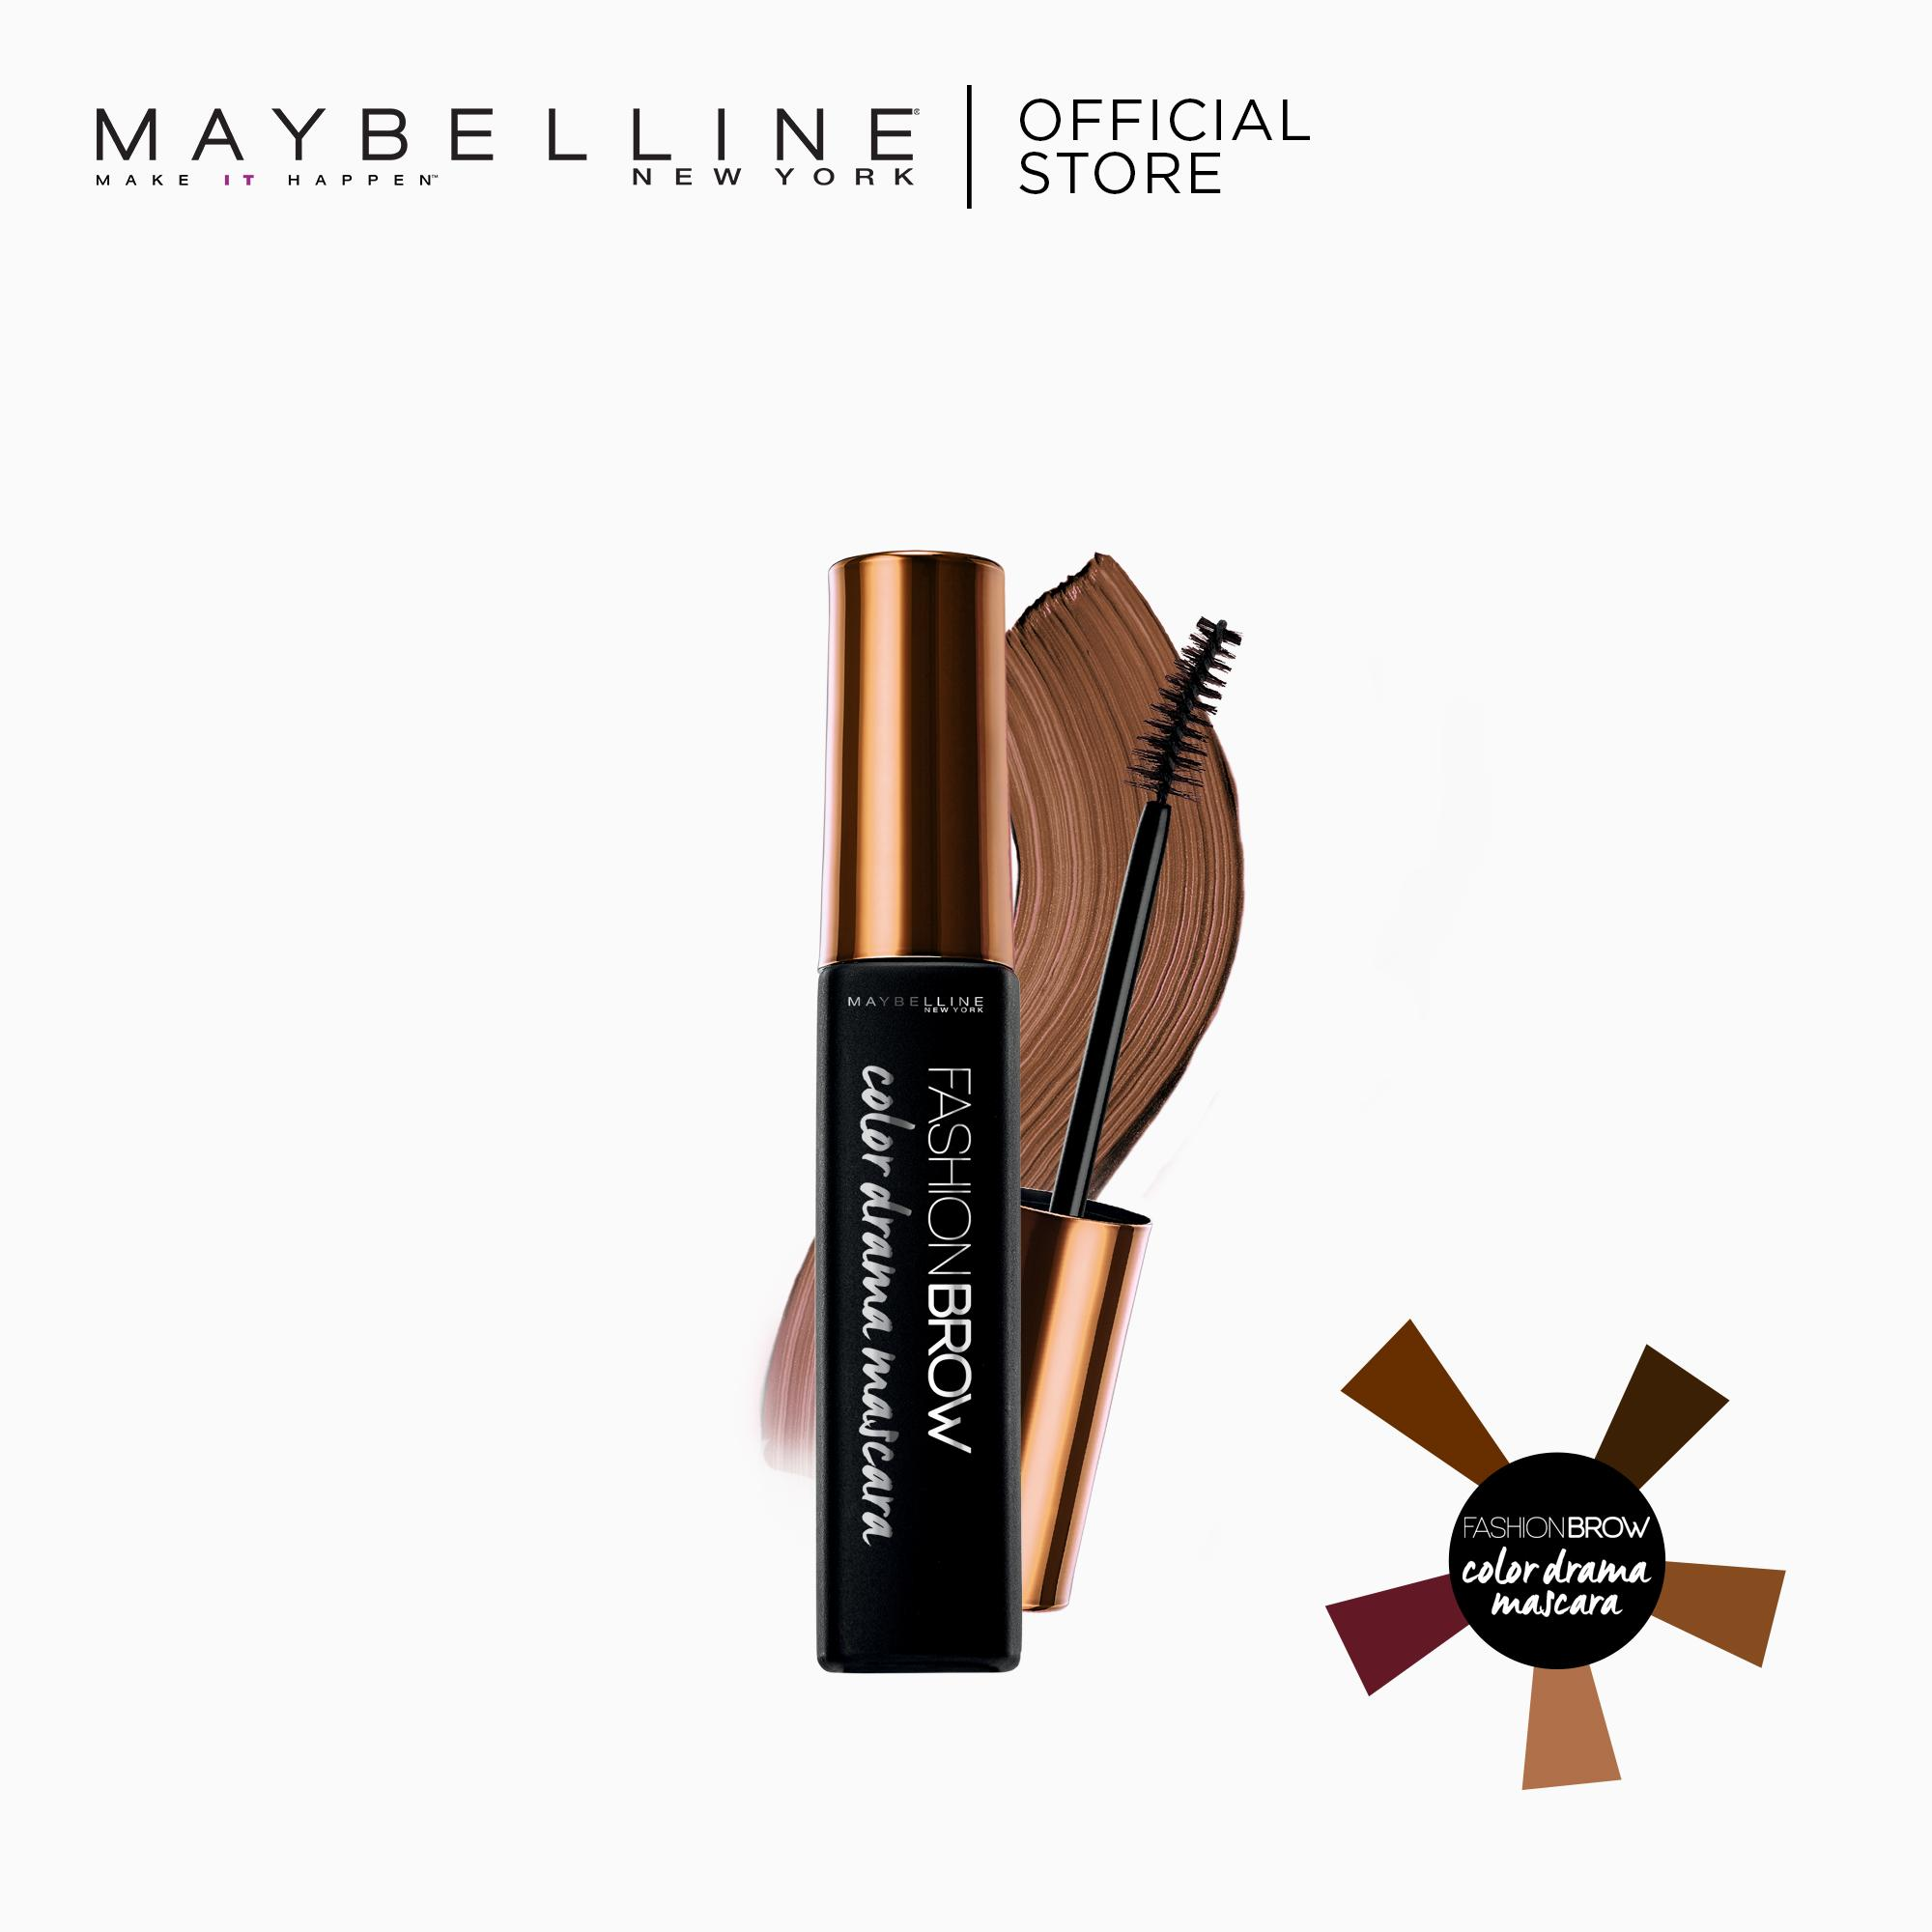 Color Drama Mascara - Natural Brown [Vivid Brows] by Maybelline Fashion Brow Philippines